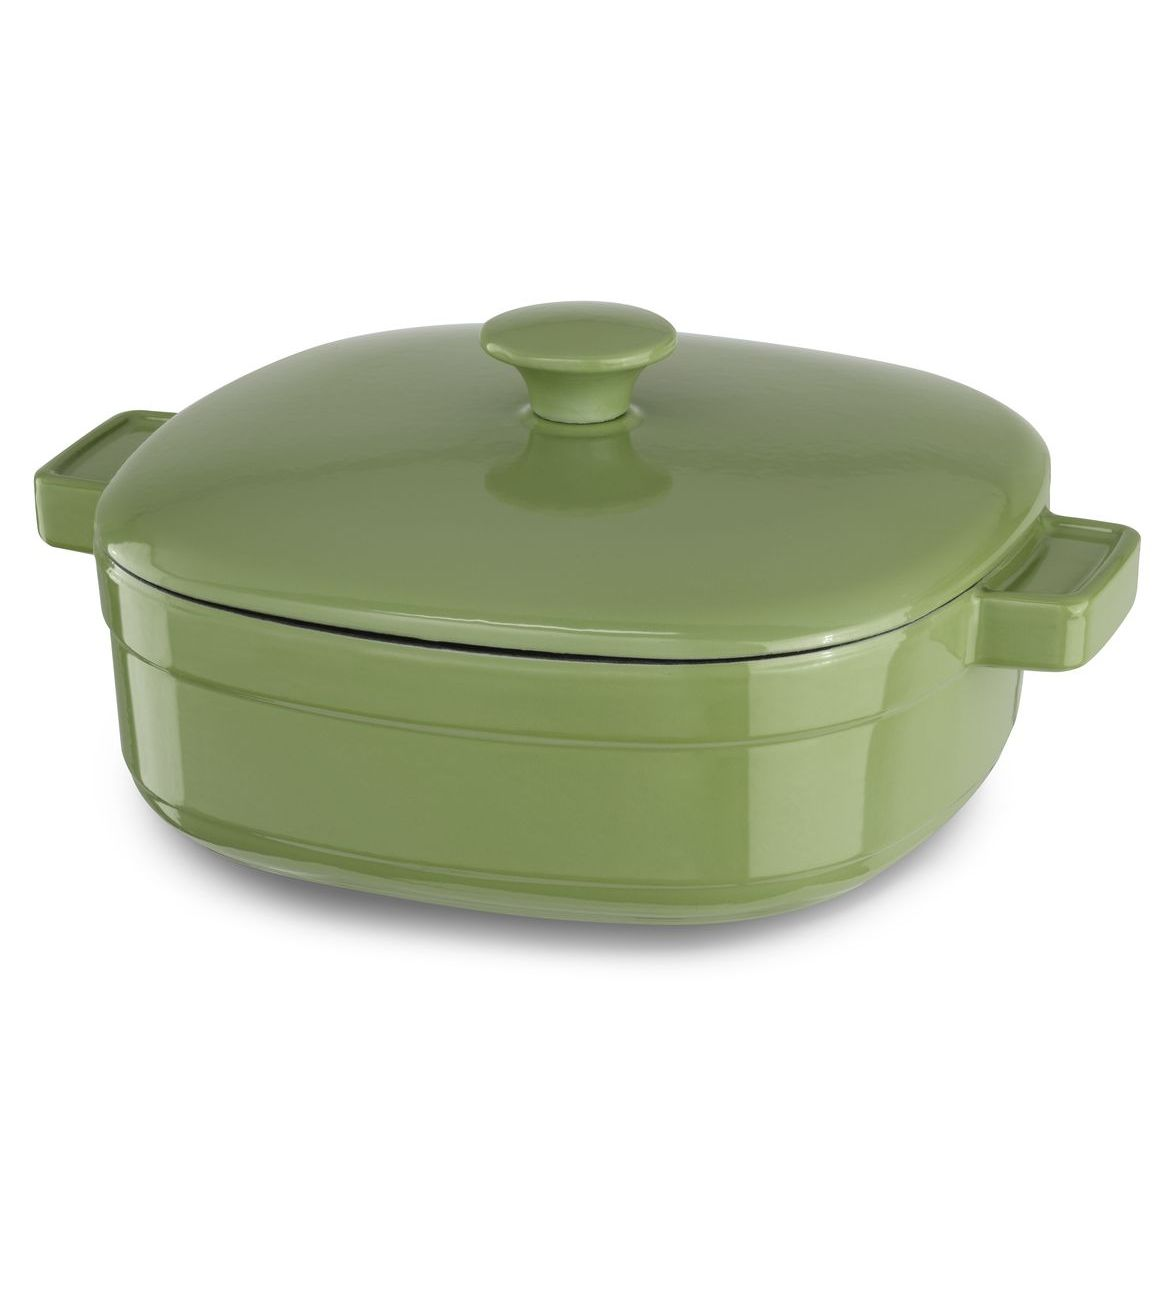 KitchenAid® Streamline Cast Iron 4-Quart Casserole